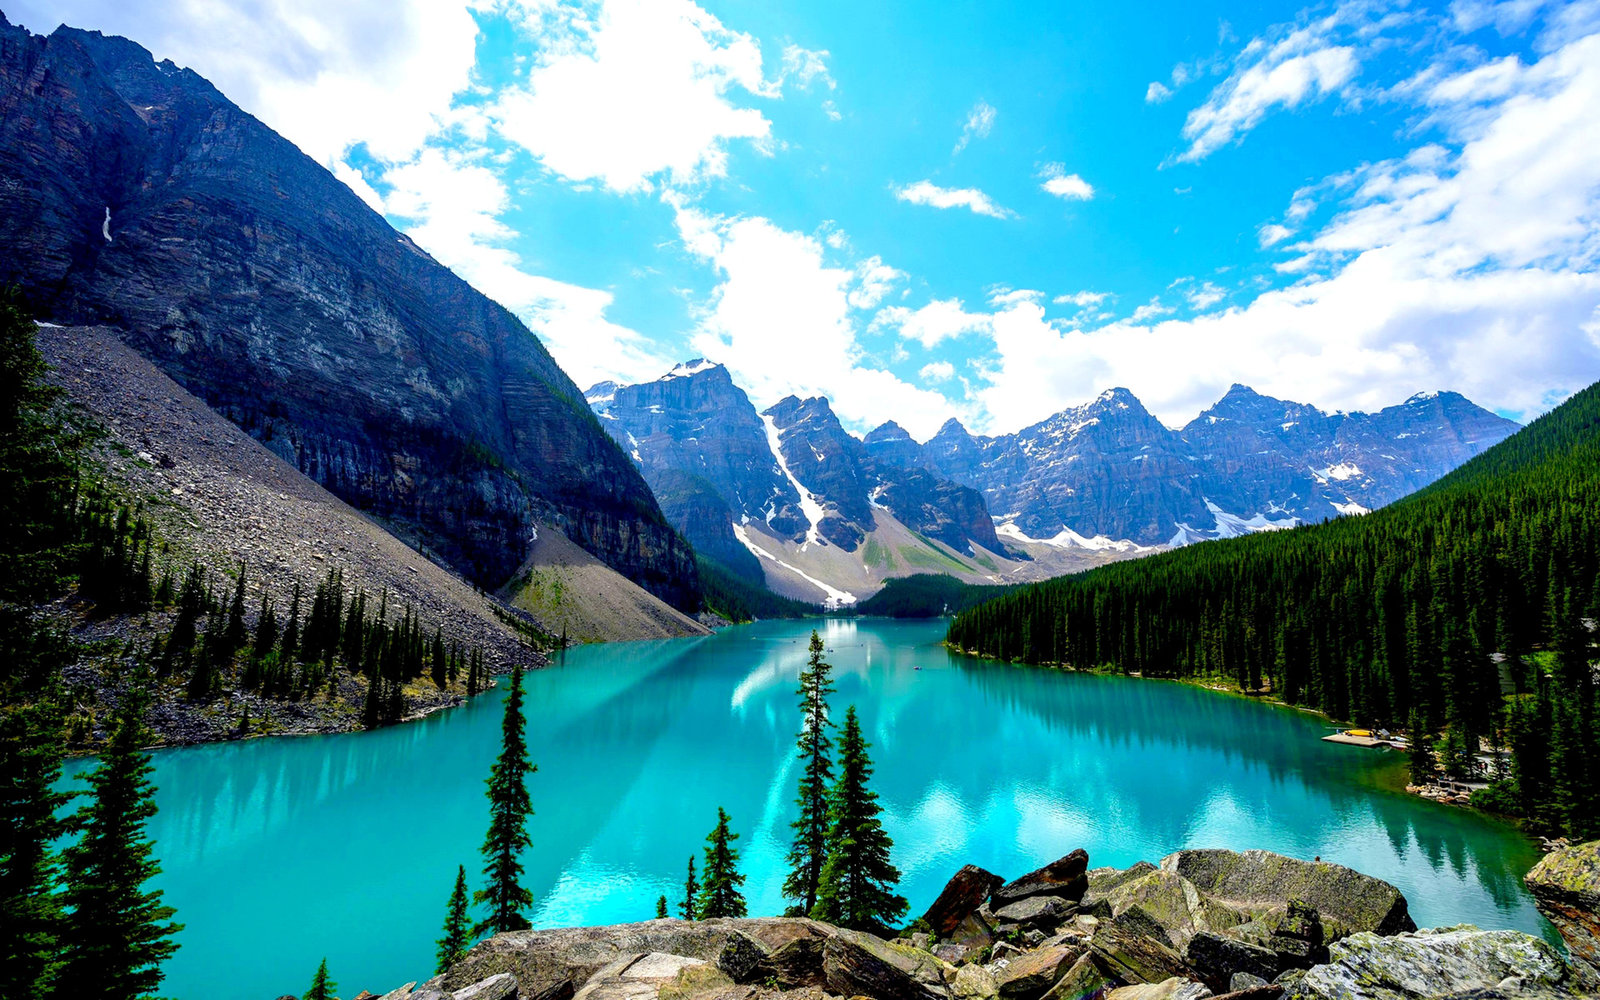 Explore Banff National Park